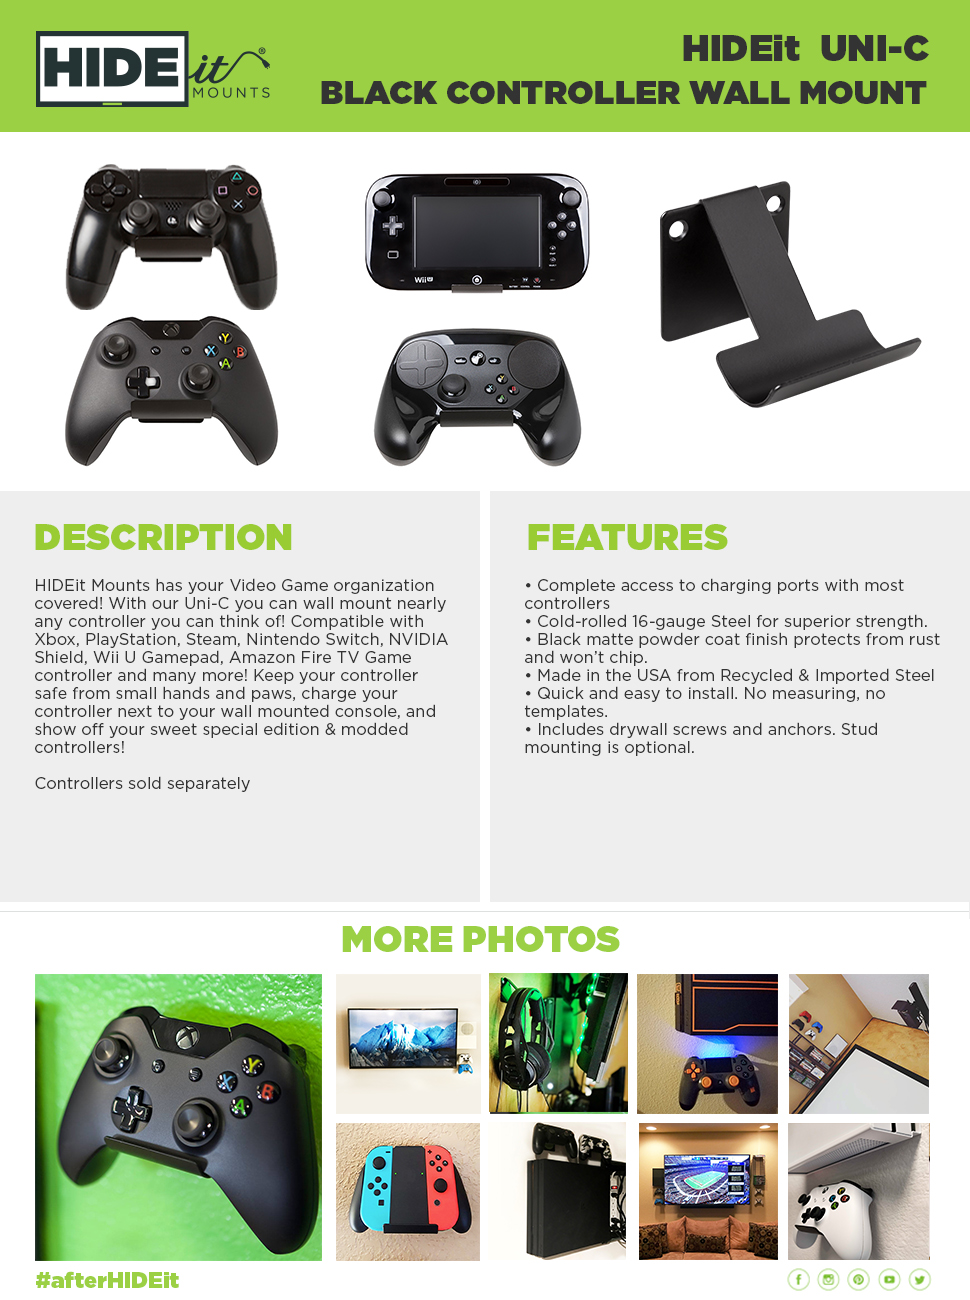 Amazon.com: HIDEit Uni-C (2 pack Black) Controller Wall Mount | Made in the USA: XBOX 360: Video